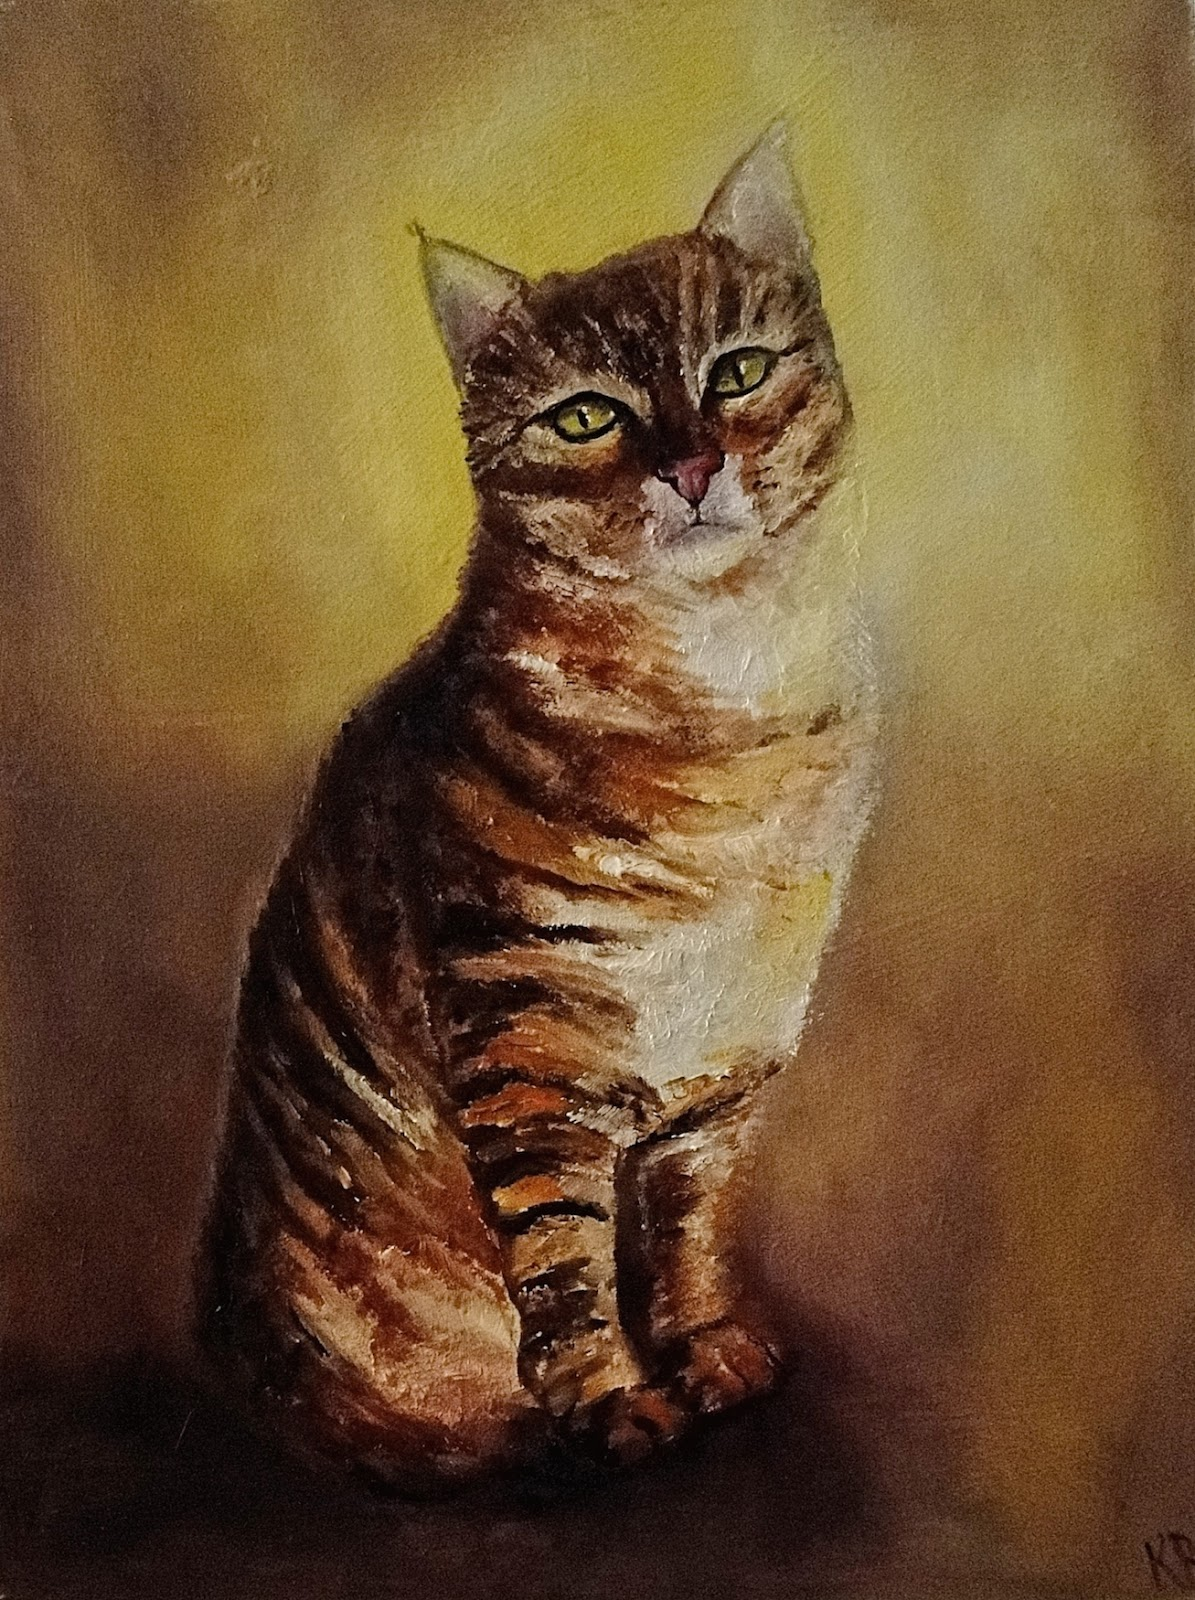 oil painting of a tabby cat on a yellow background. A pet portrait by Karen from Devon, UK.